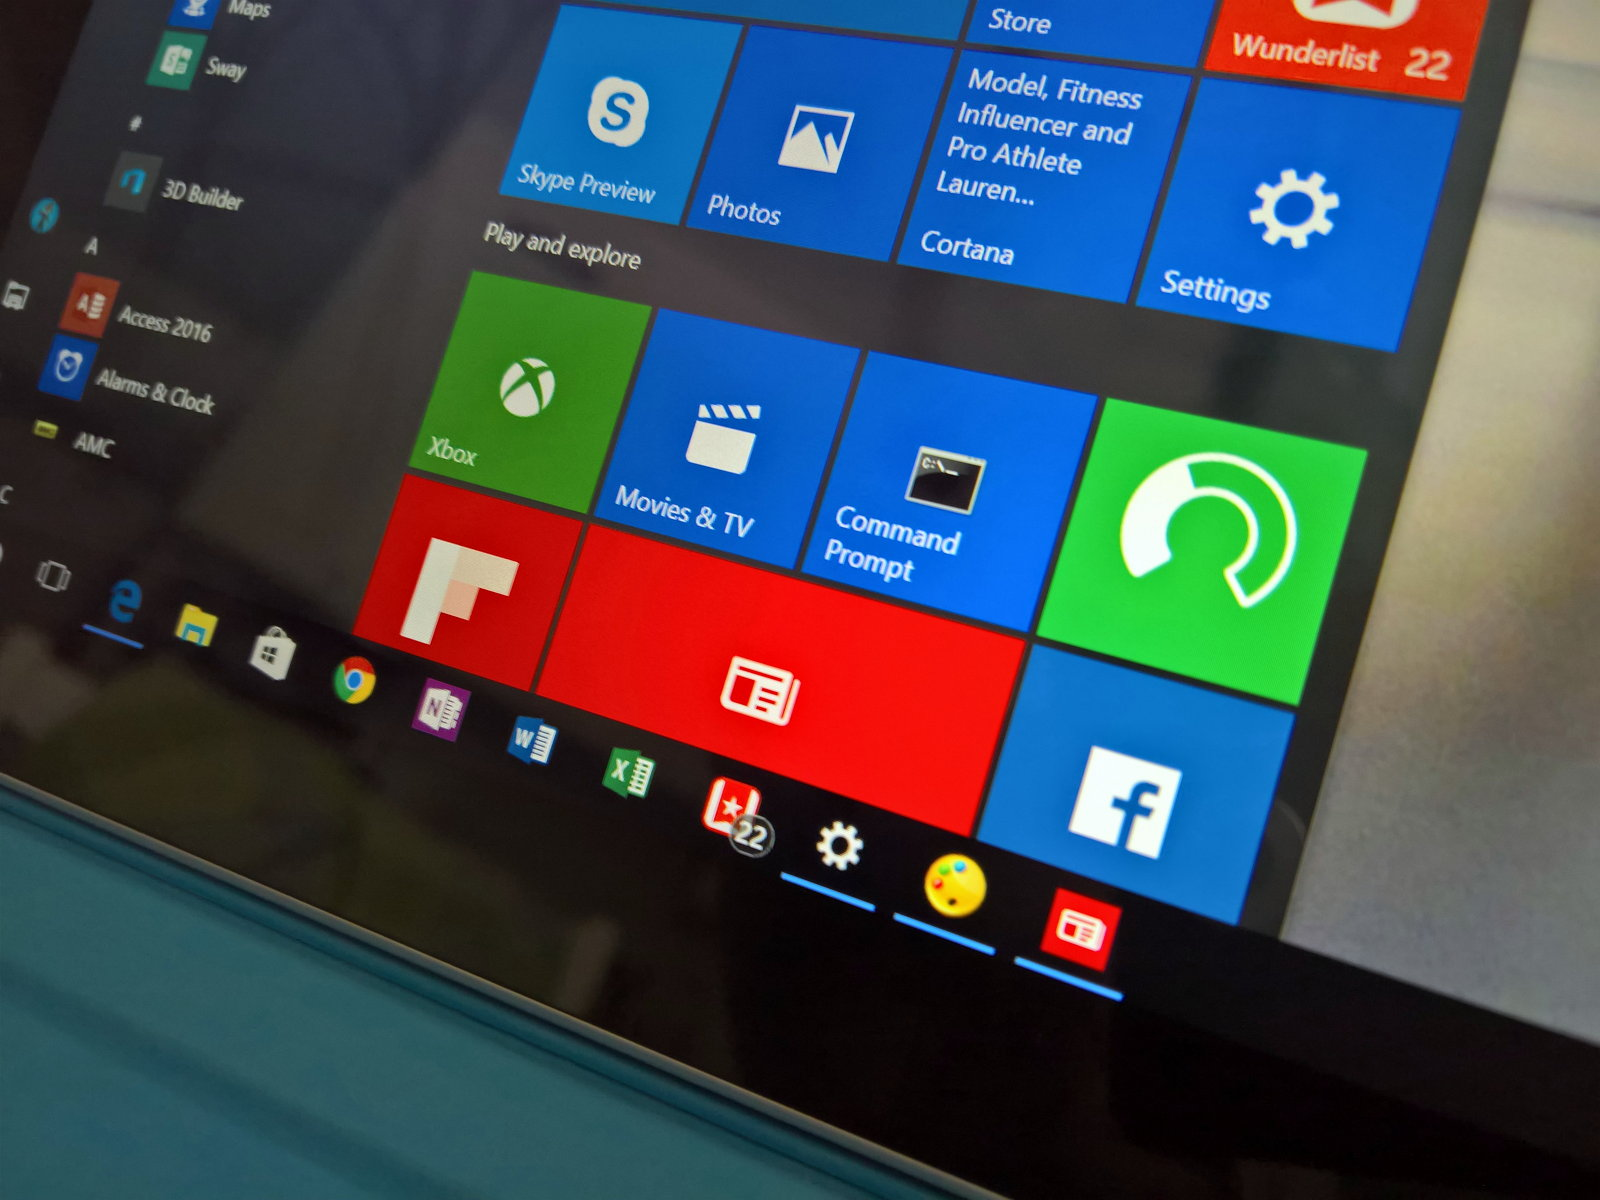 Windows 10 Anniversary Update official release